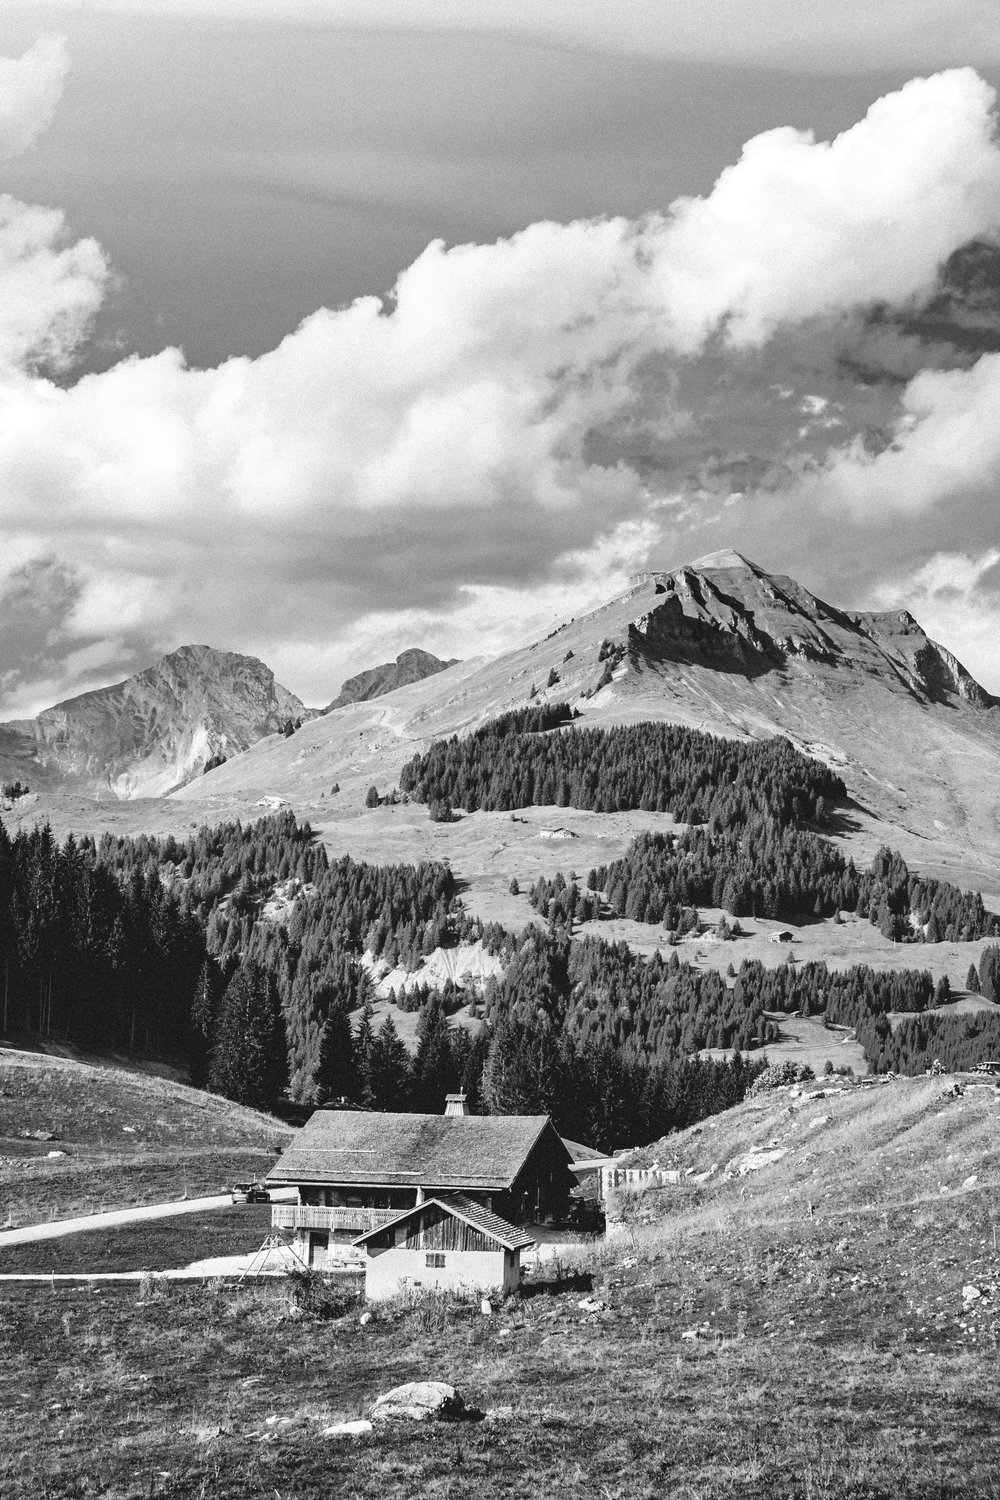 6 | Alpine Legacy - Most of our cabins in the French Alps started has farms. Mountaineers and shepherds built those higher in the mountains to welcome livestock during the shifts winter/summer. Another shot that represents home. Haute Savoie, France. September 2018.